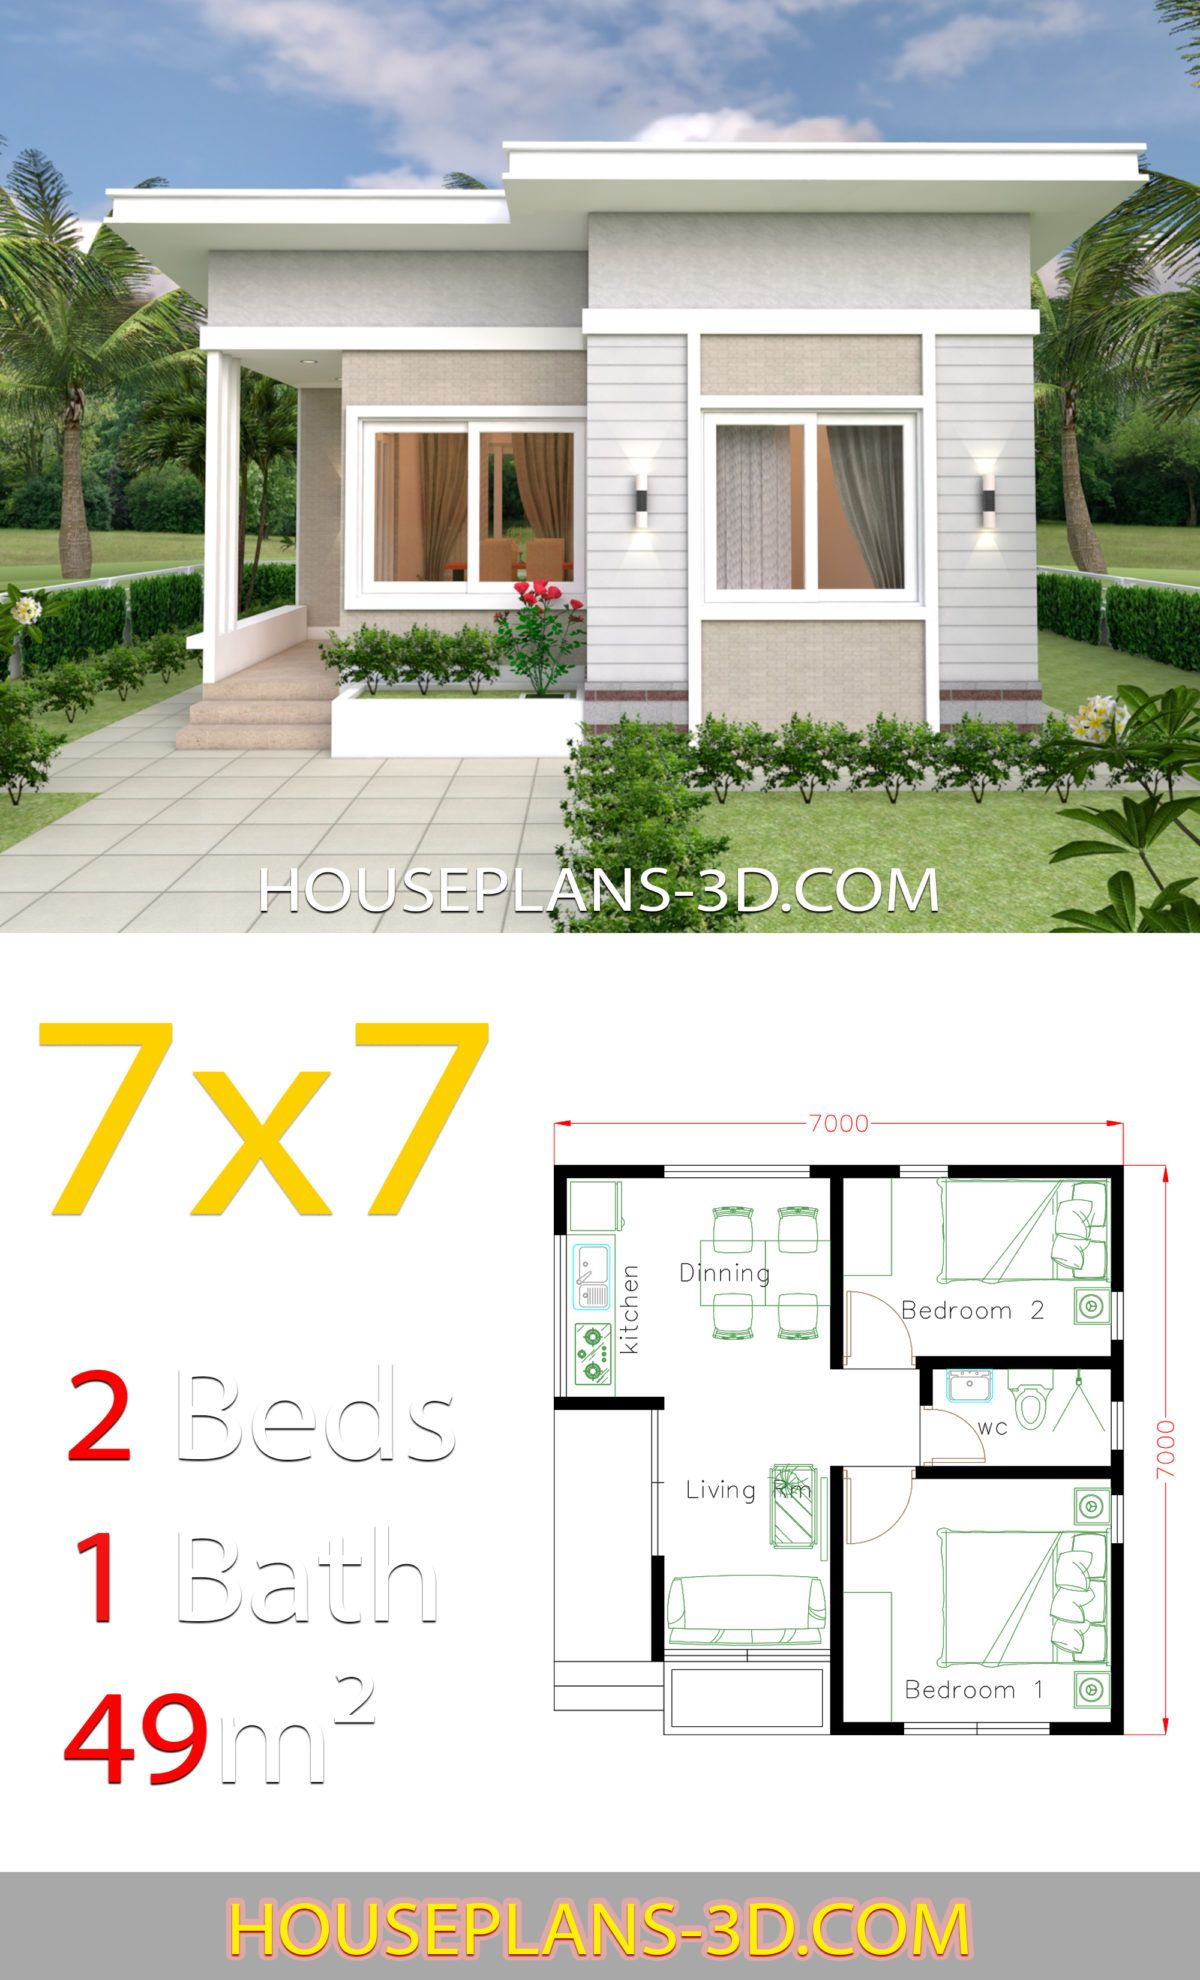 Small House Design 7x7 With 2 Bedrooms In 2020 Small House Design Plans Small House Design Simple House Design